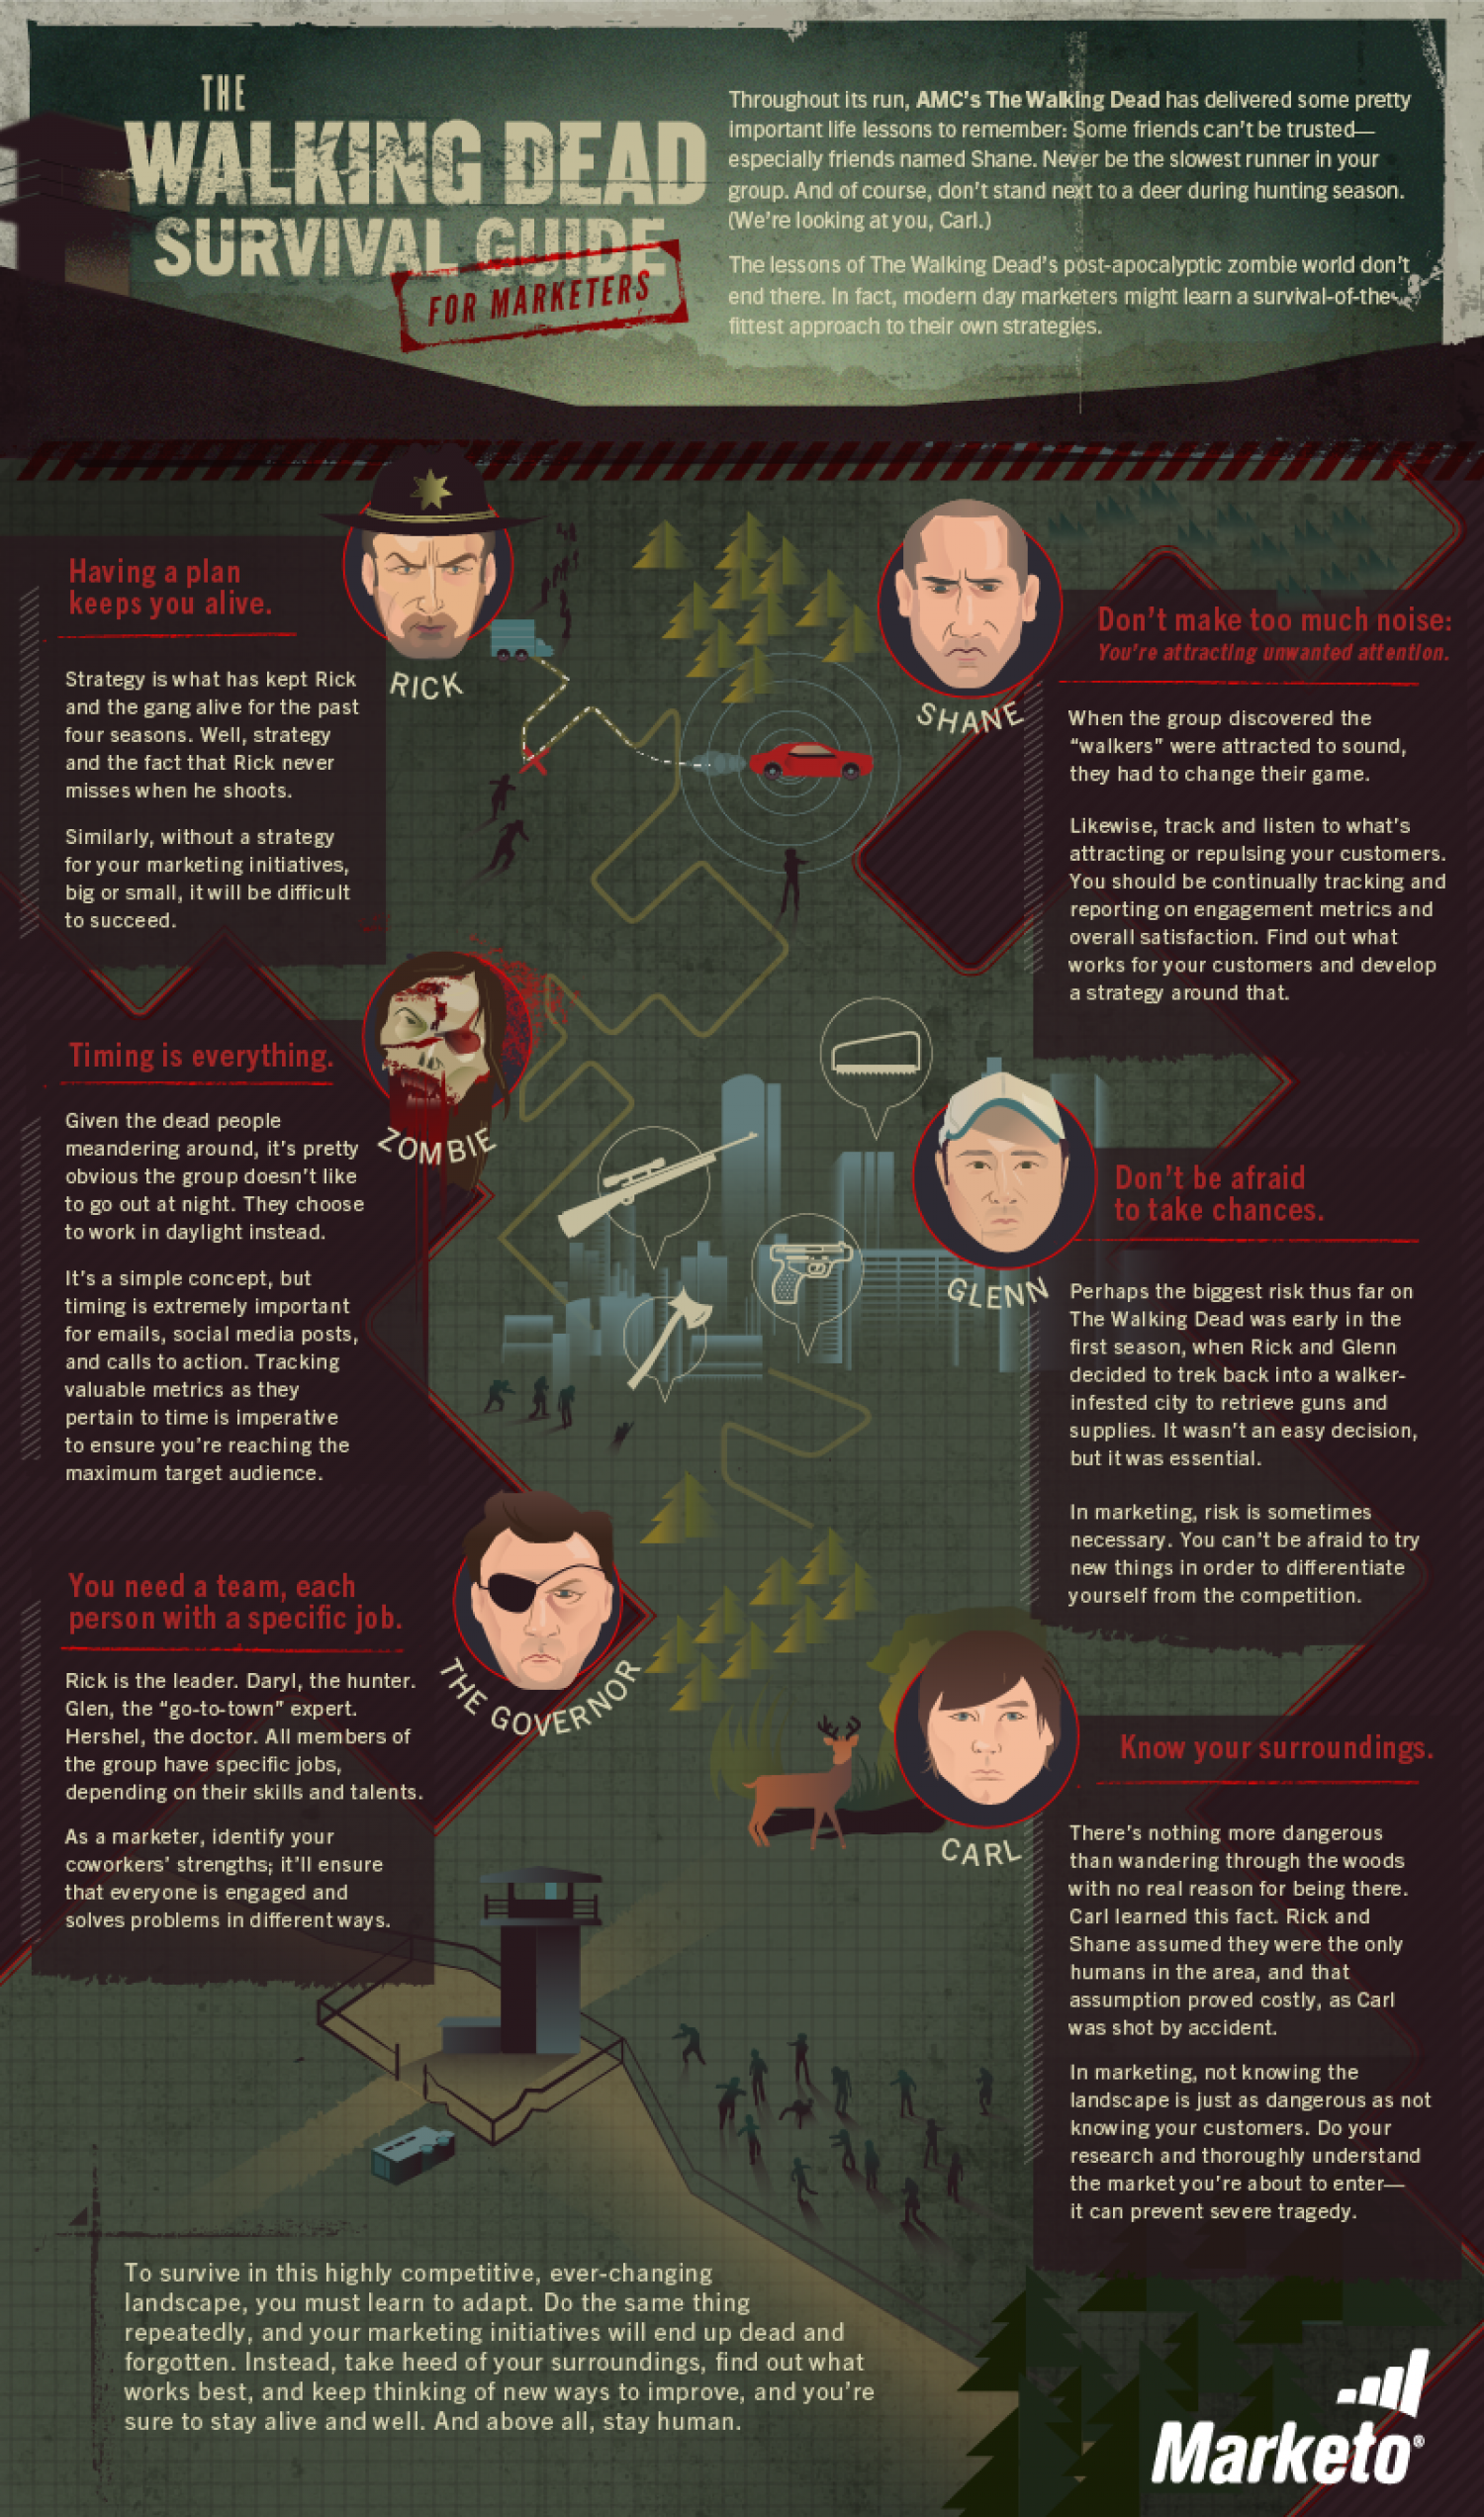 The Walking Dead Survival Guide for Marketers Infographic